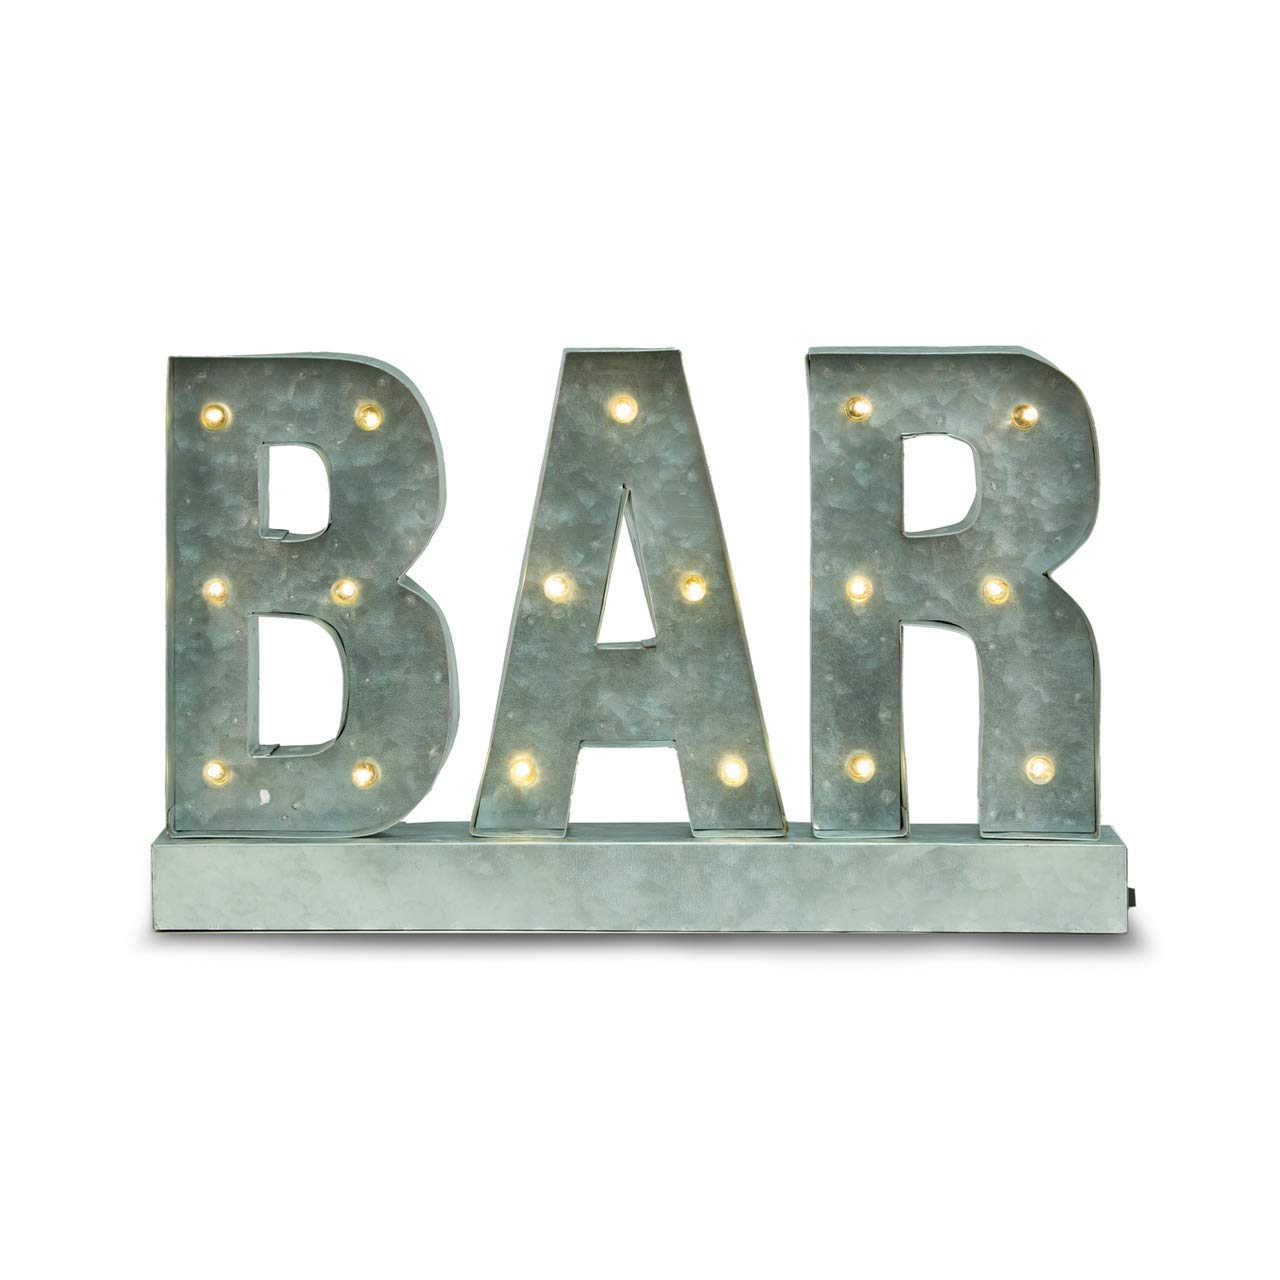 Marquee BAR Metal LED Lighted Large Decorative Sign Bey Berk